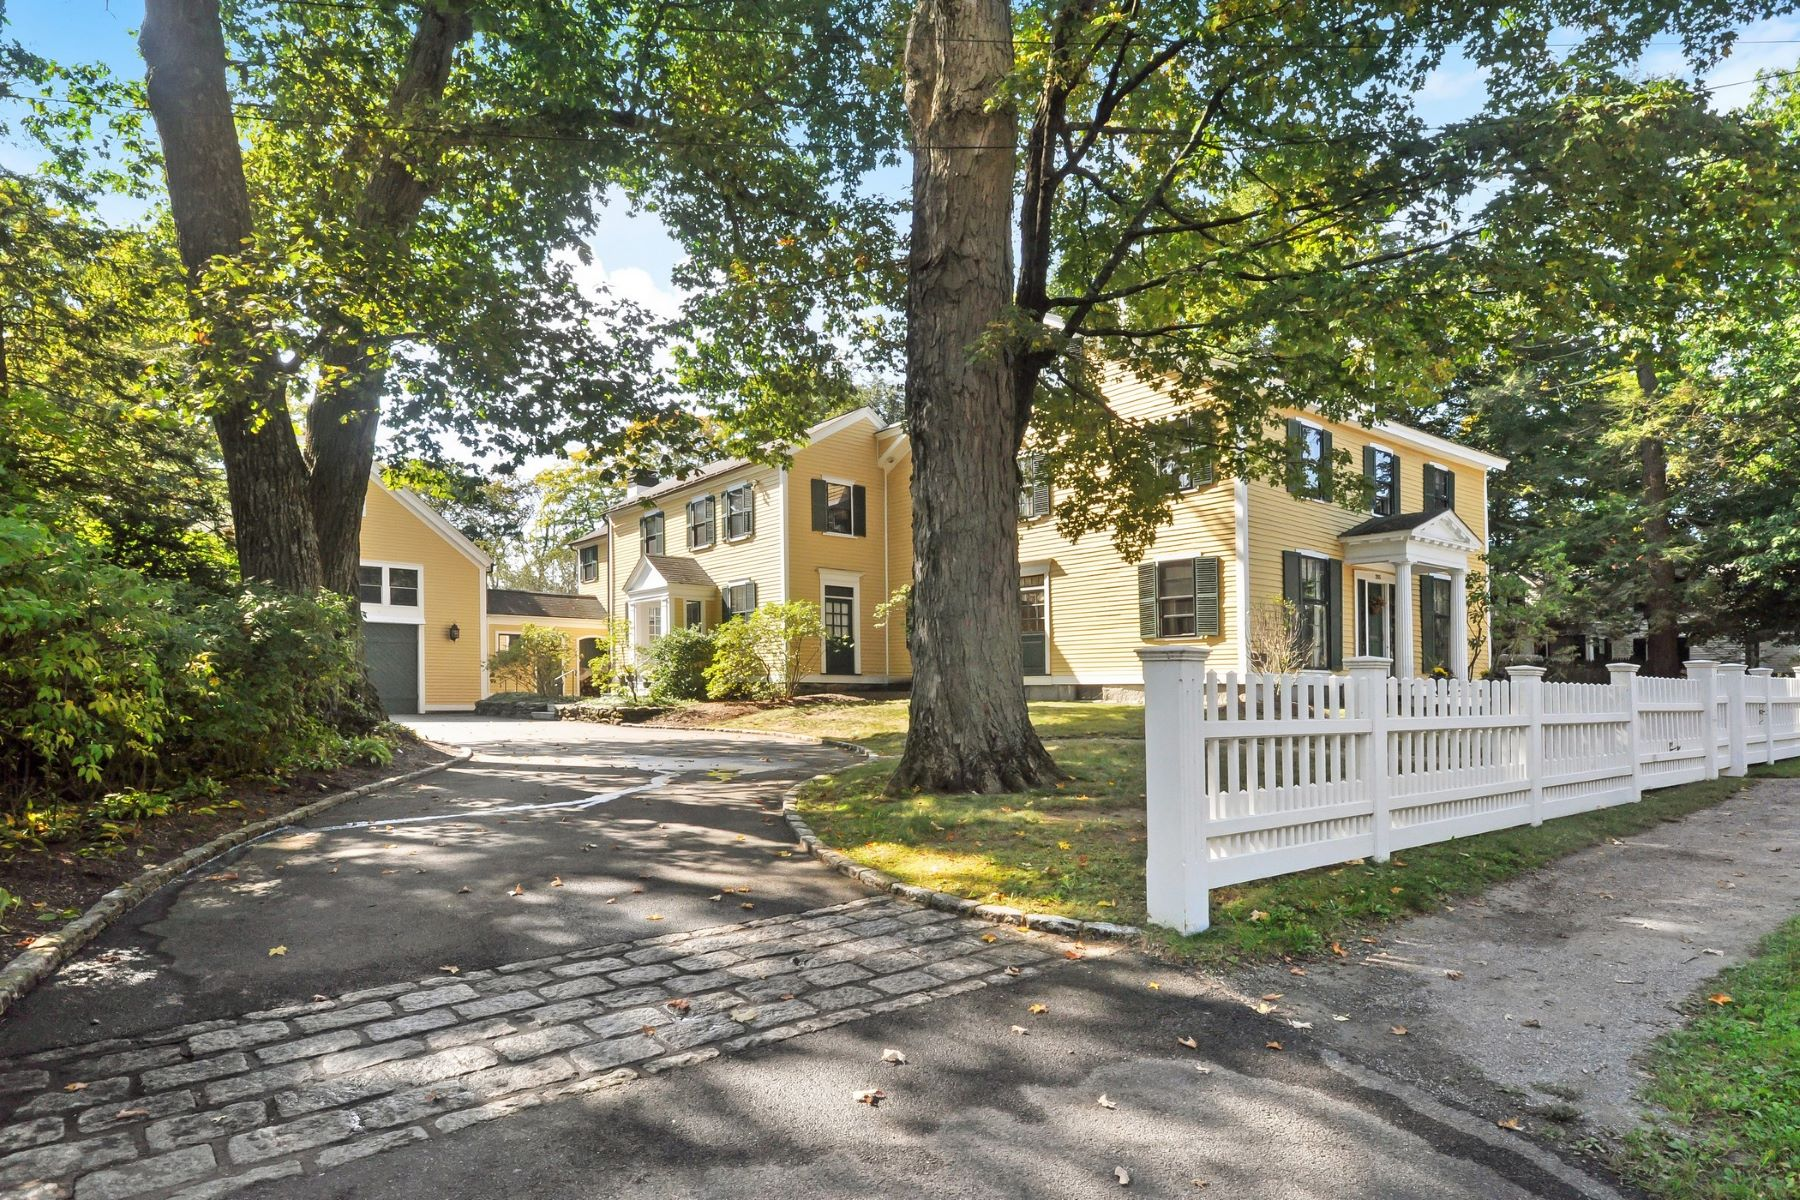 Single Family Home for Active at 255 Main Street, Concord 255 Main St Concord, Massachusetts 01742 United States